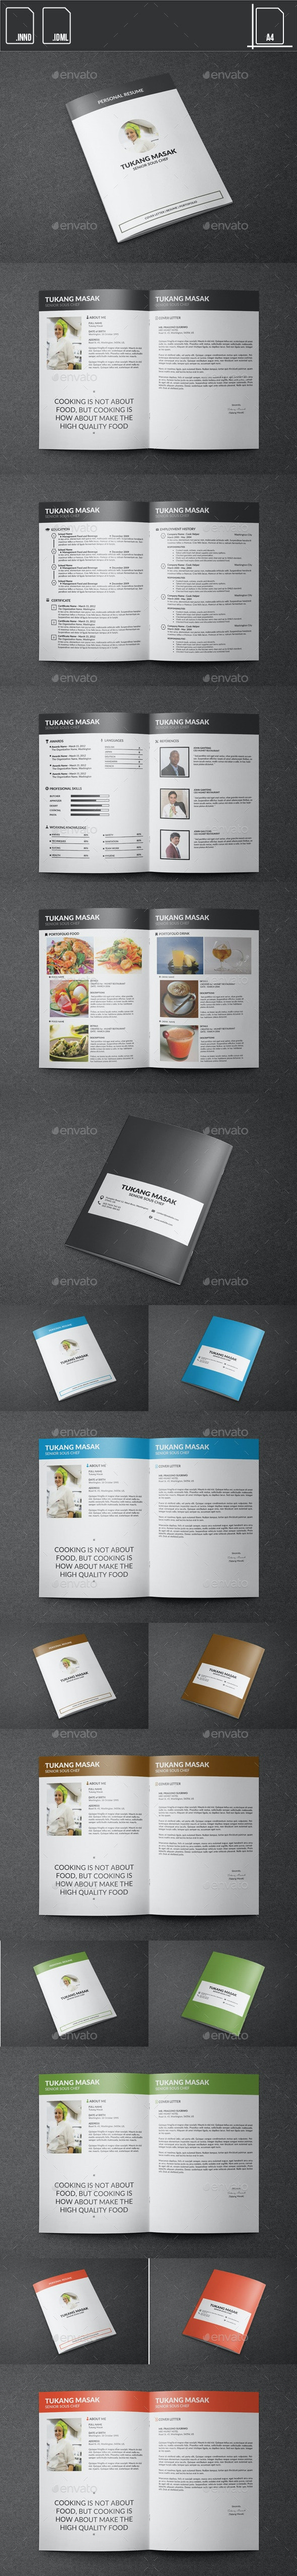 Resume Chef Booklet - Resumes Stationery